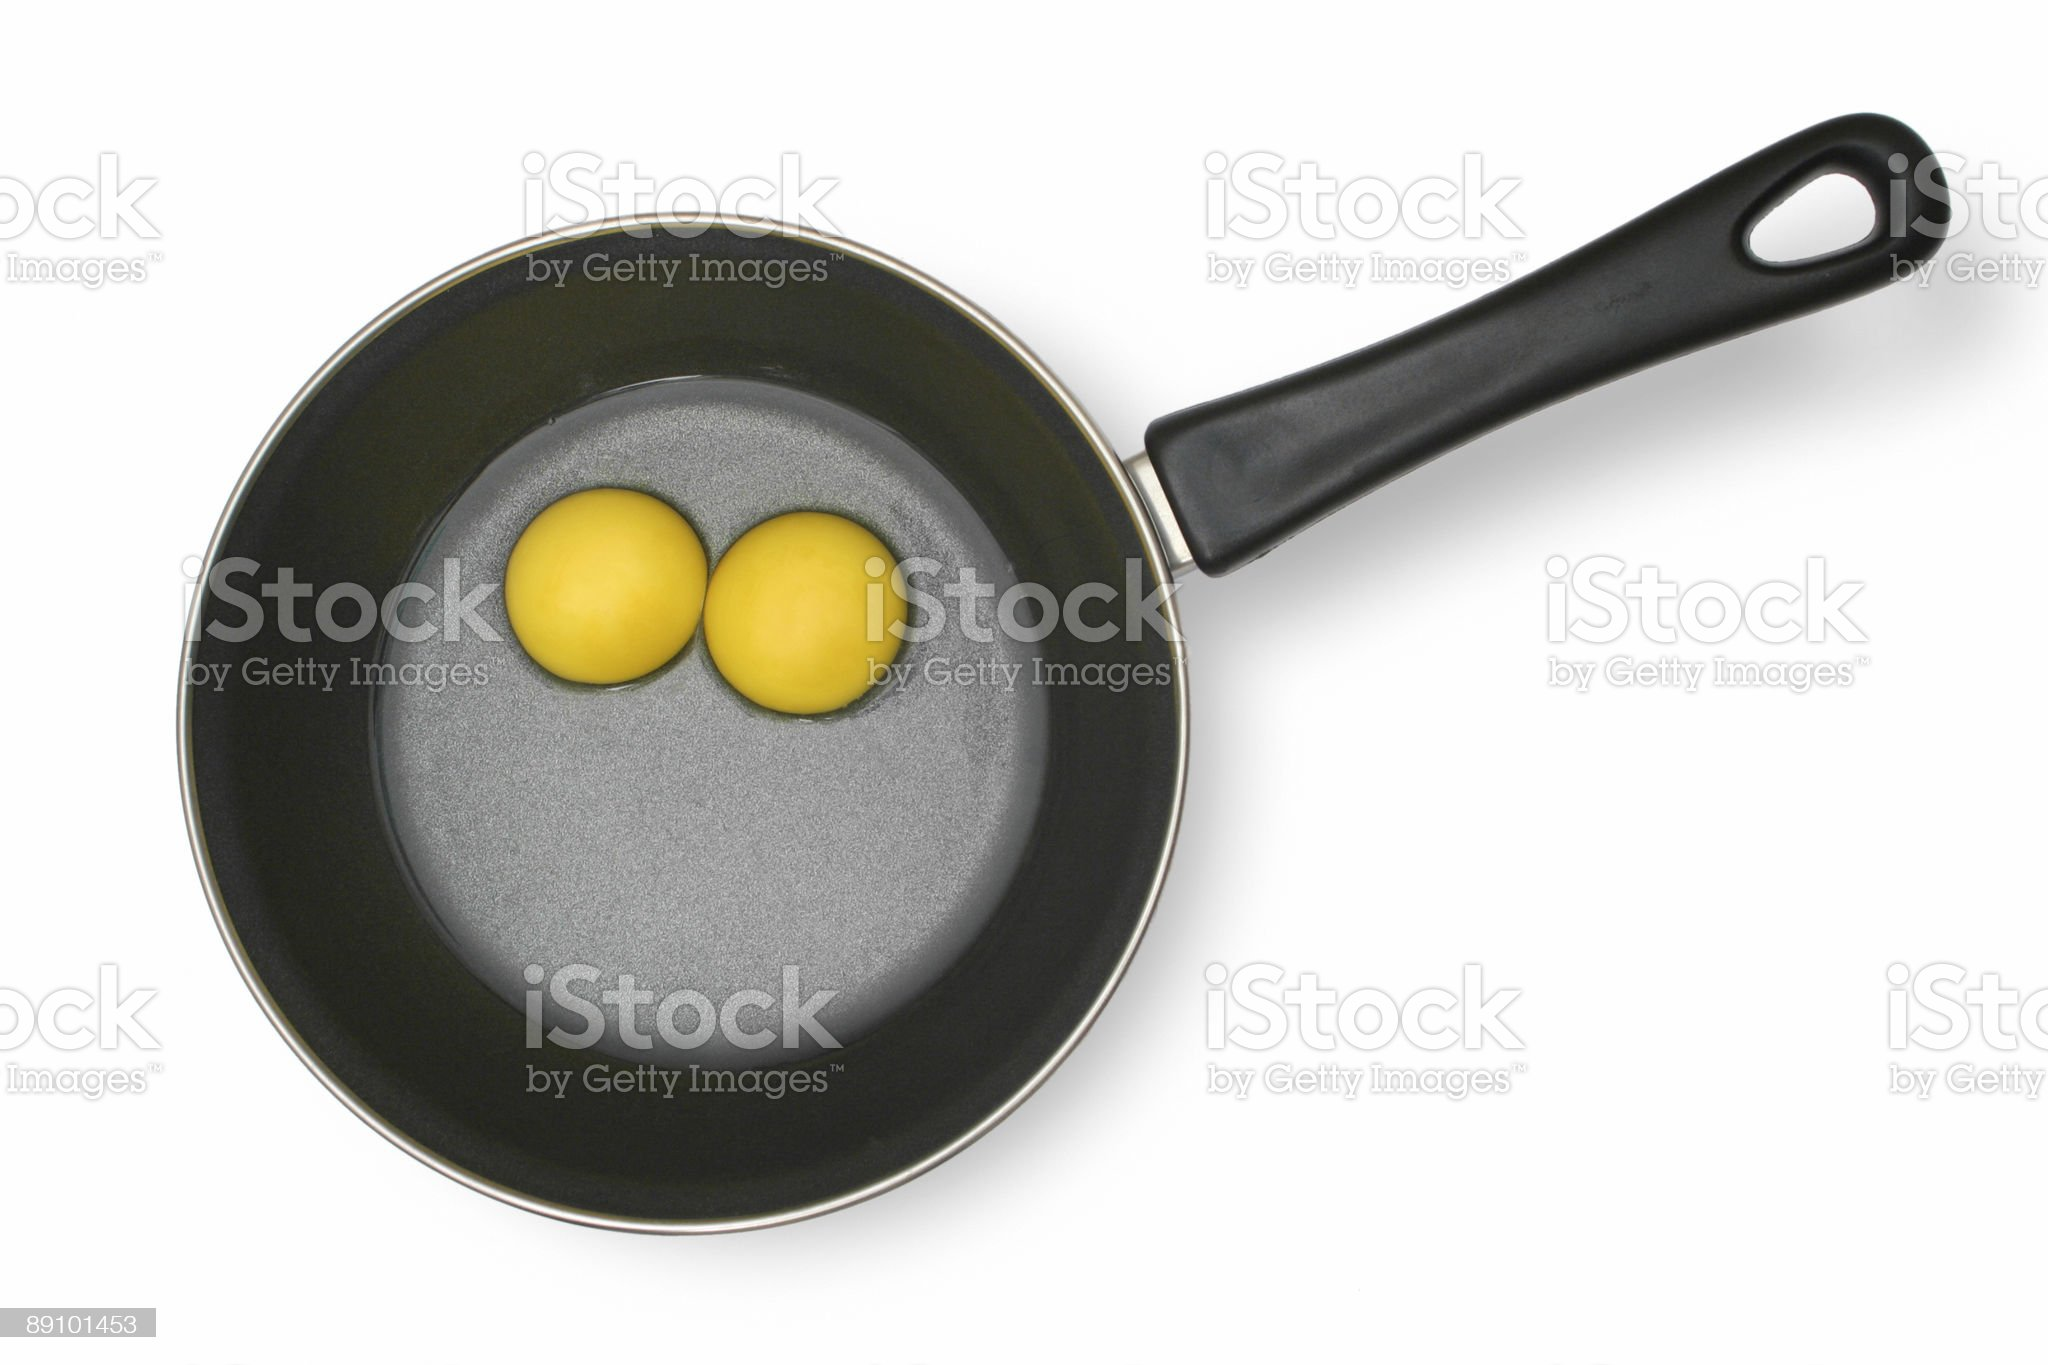 Raw eggs royalty-free stock photo